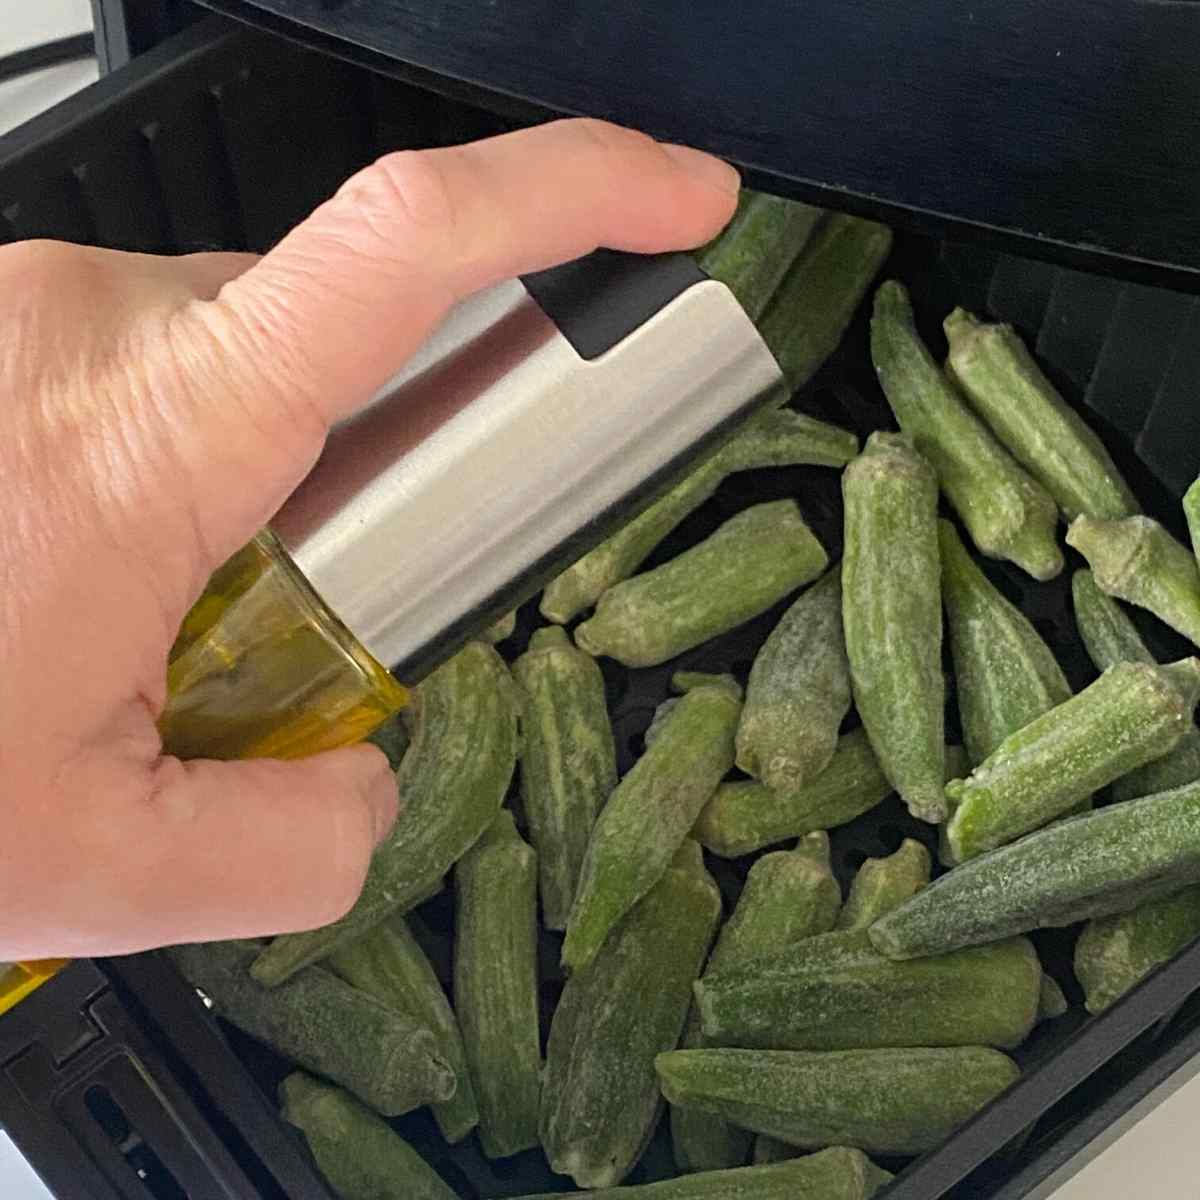 Hand holding olive oil mister over okra pods in an air fryer.